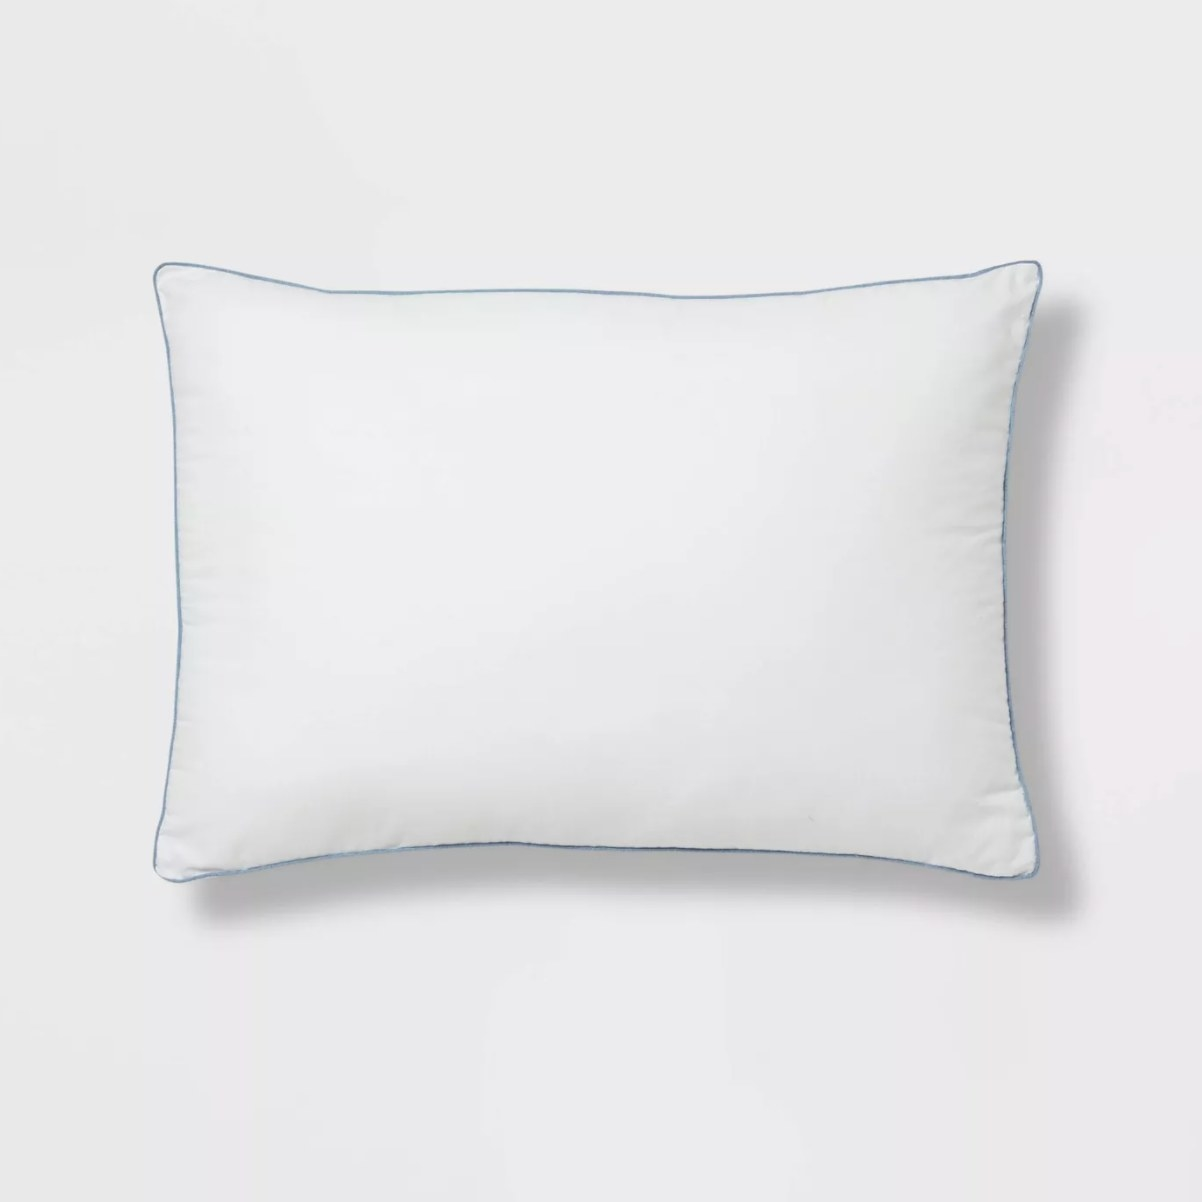 The extra firm down alternative pillow in white